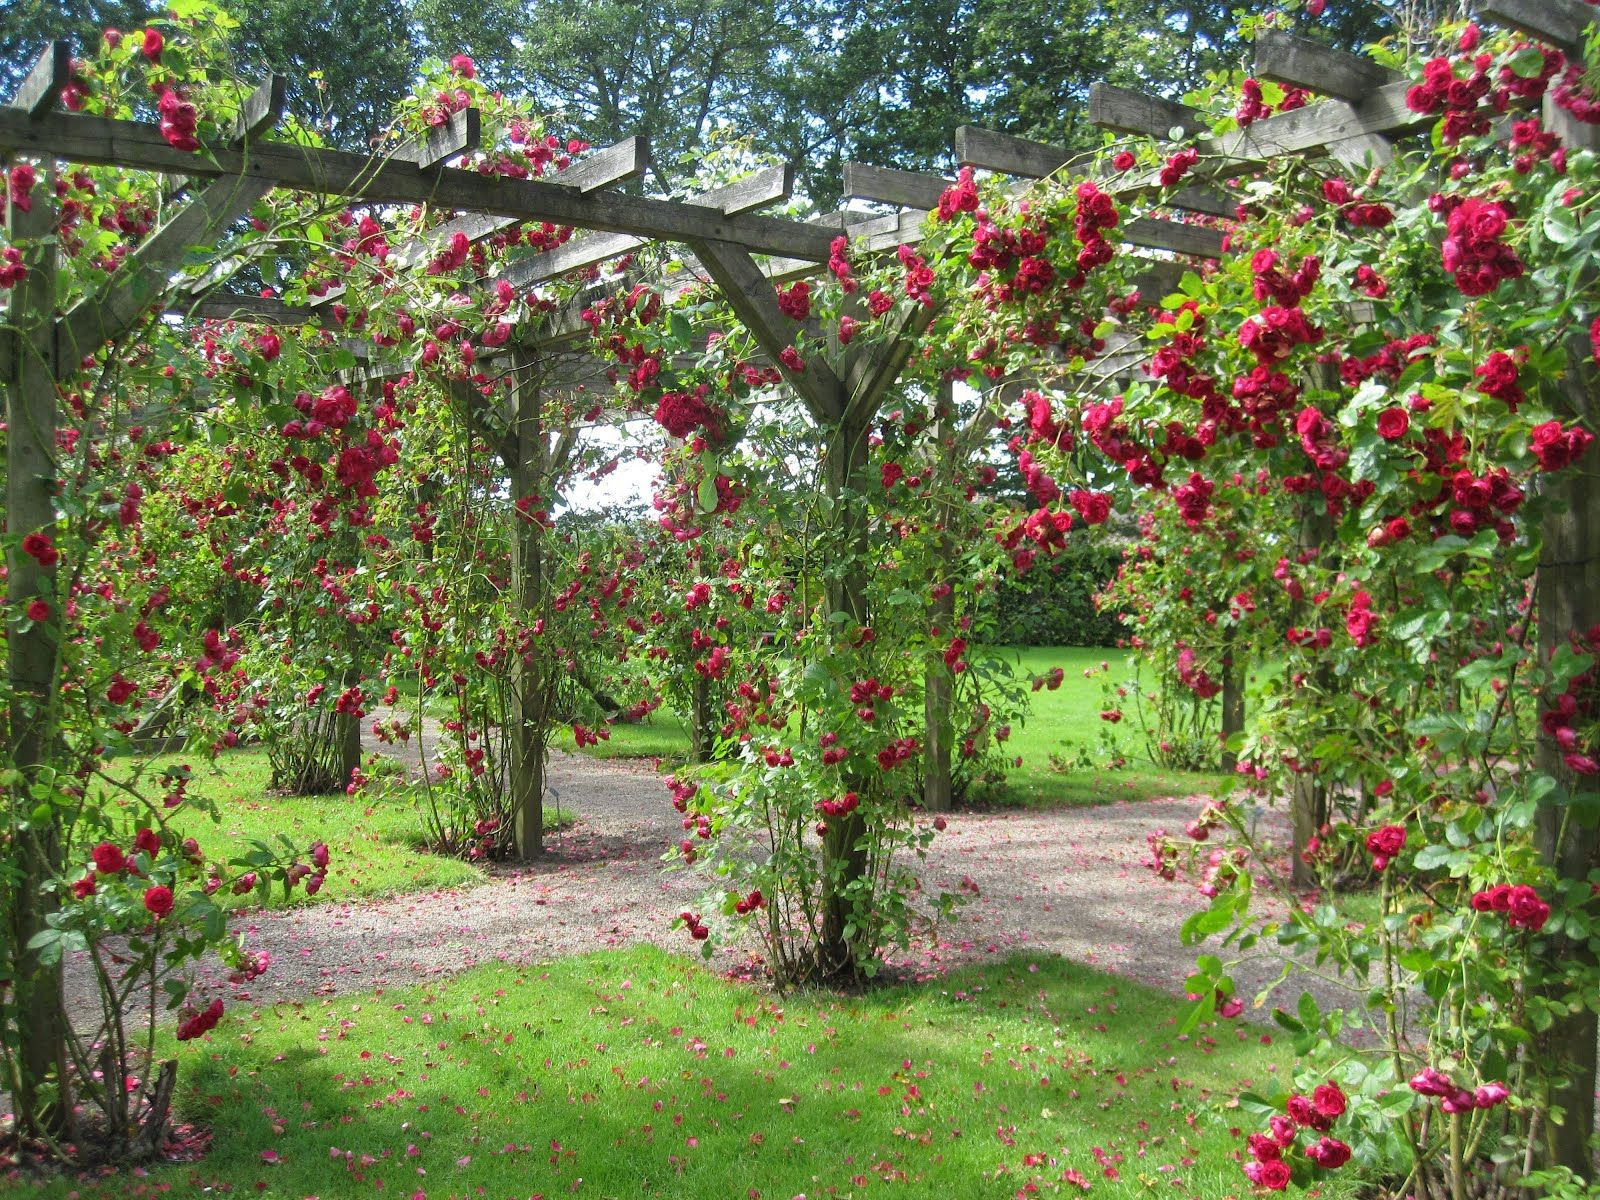 Backyard rose garden - Garden Planning